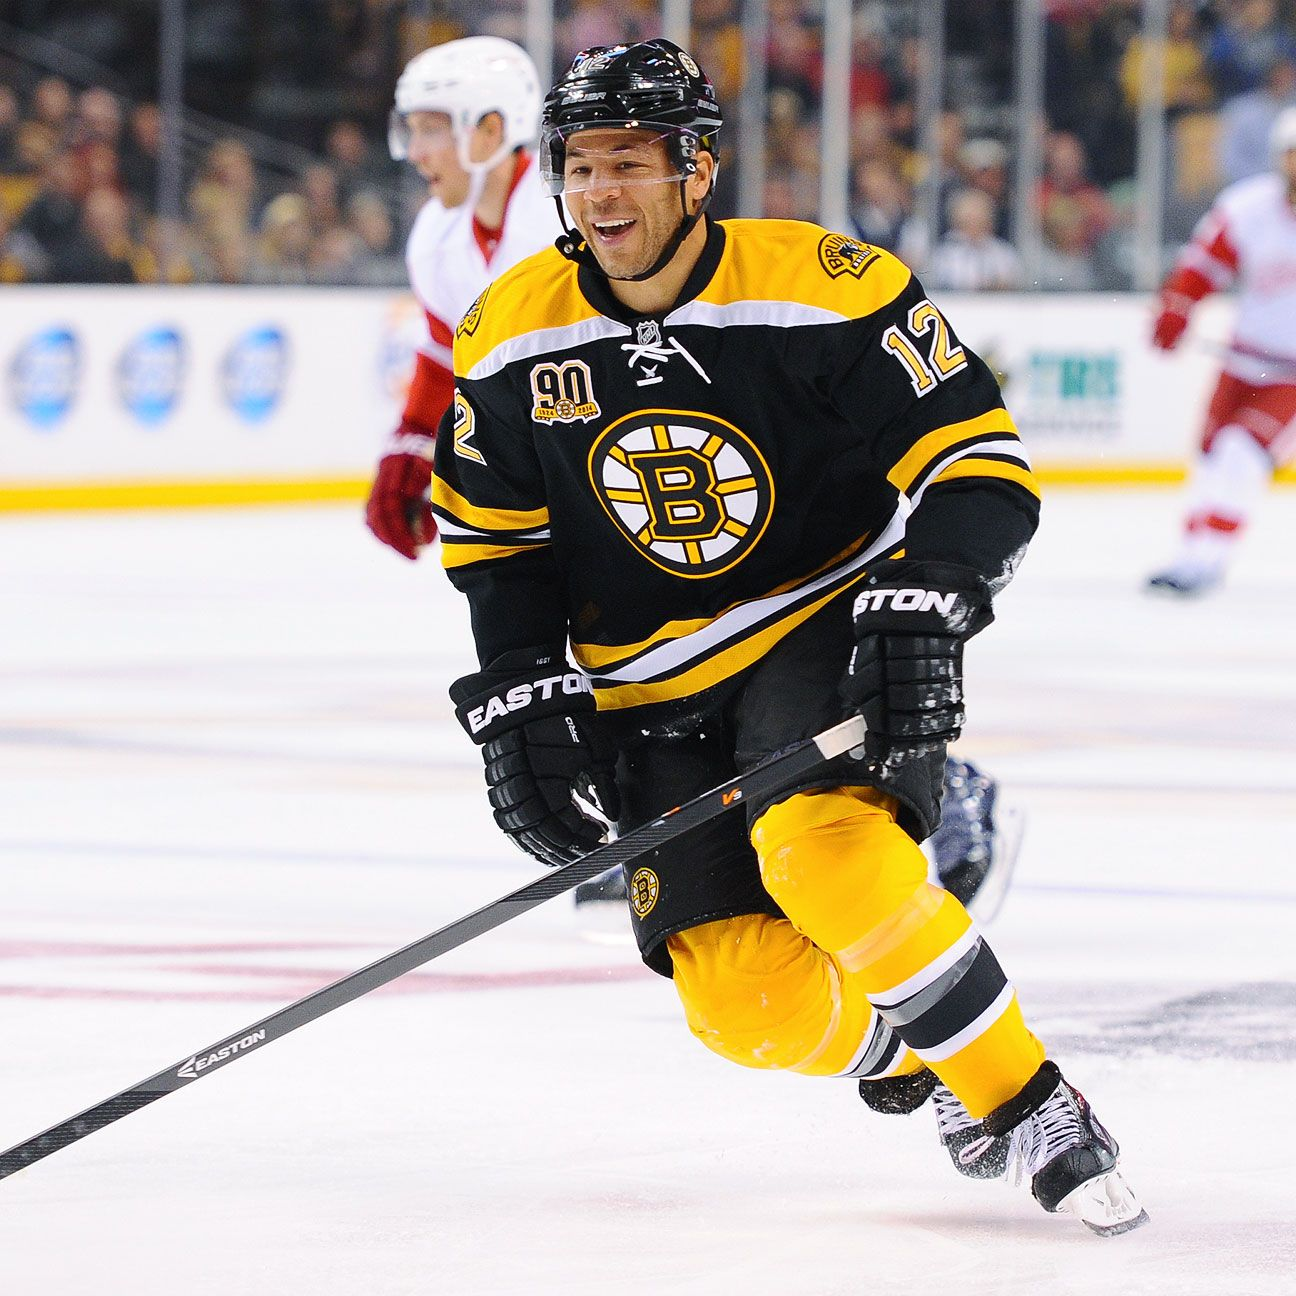 Boston Bruins' Jarome Iginla Itching To Etch Name On